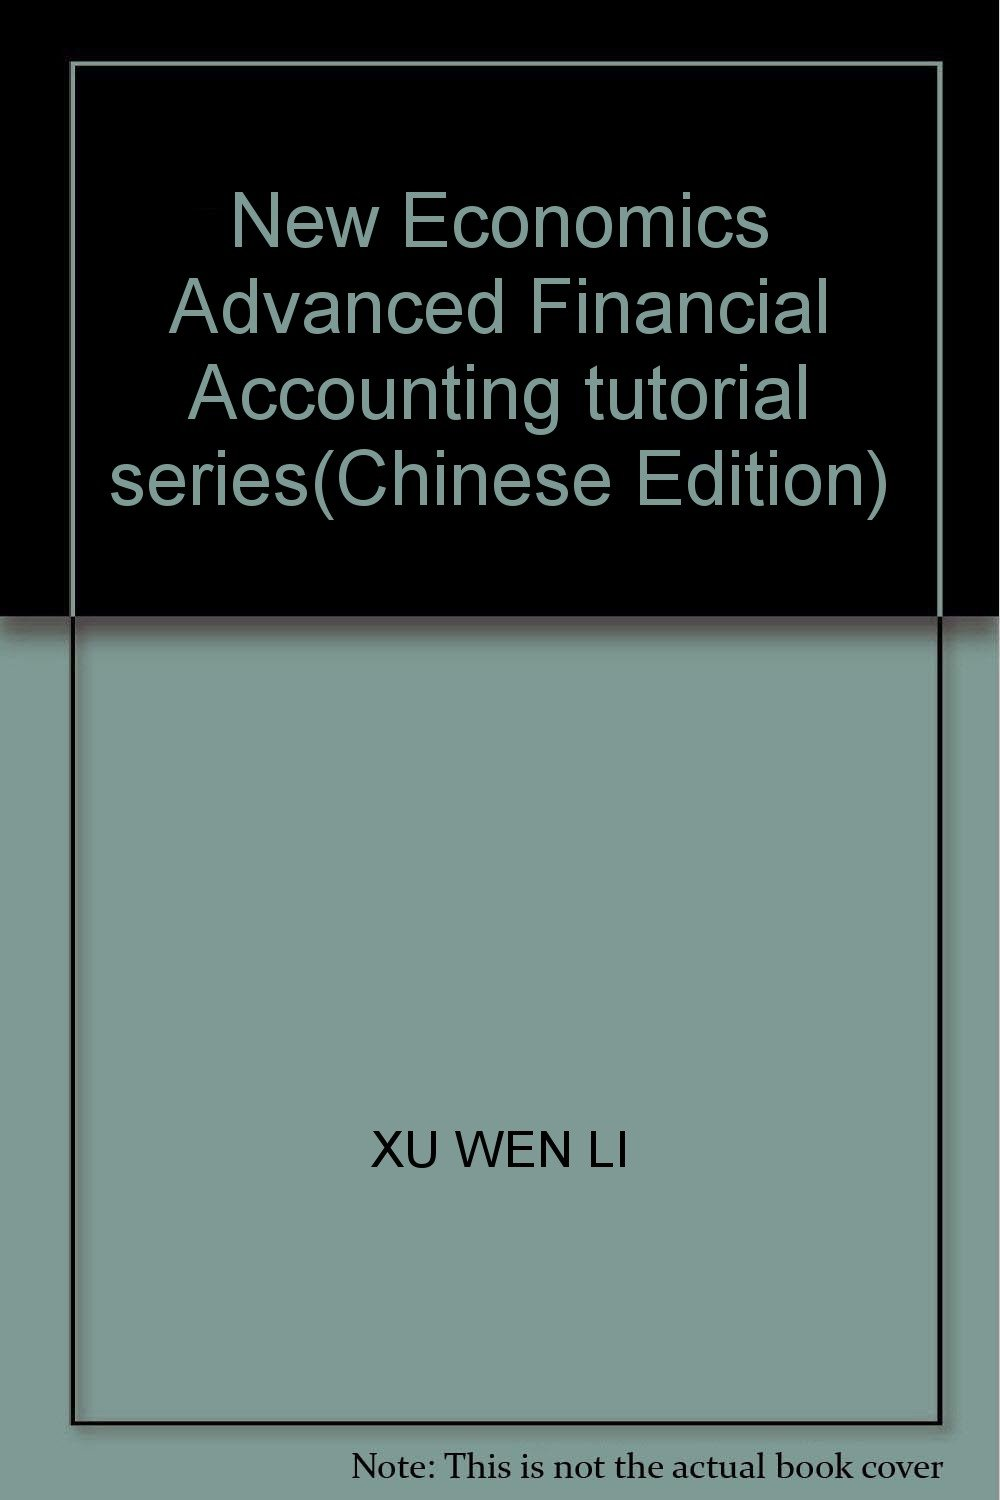 New Economics Advanced Financial Accounting tutorial series(Chinese Edition):  XU WEN LI: 9787542918123: Amazon.com: Books